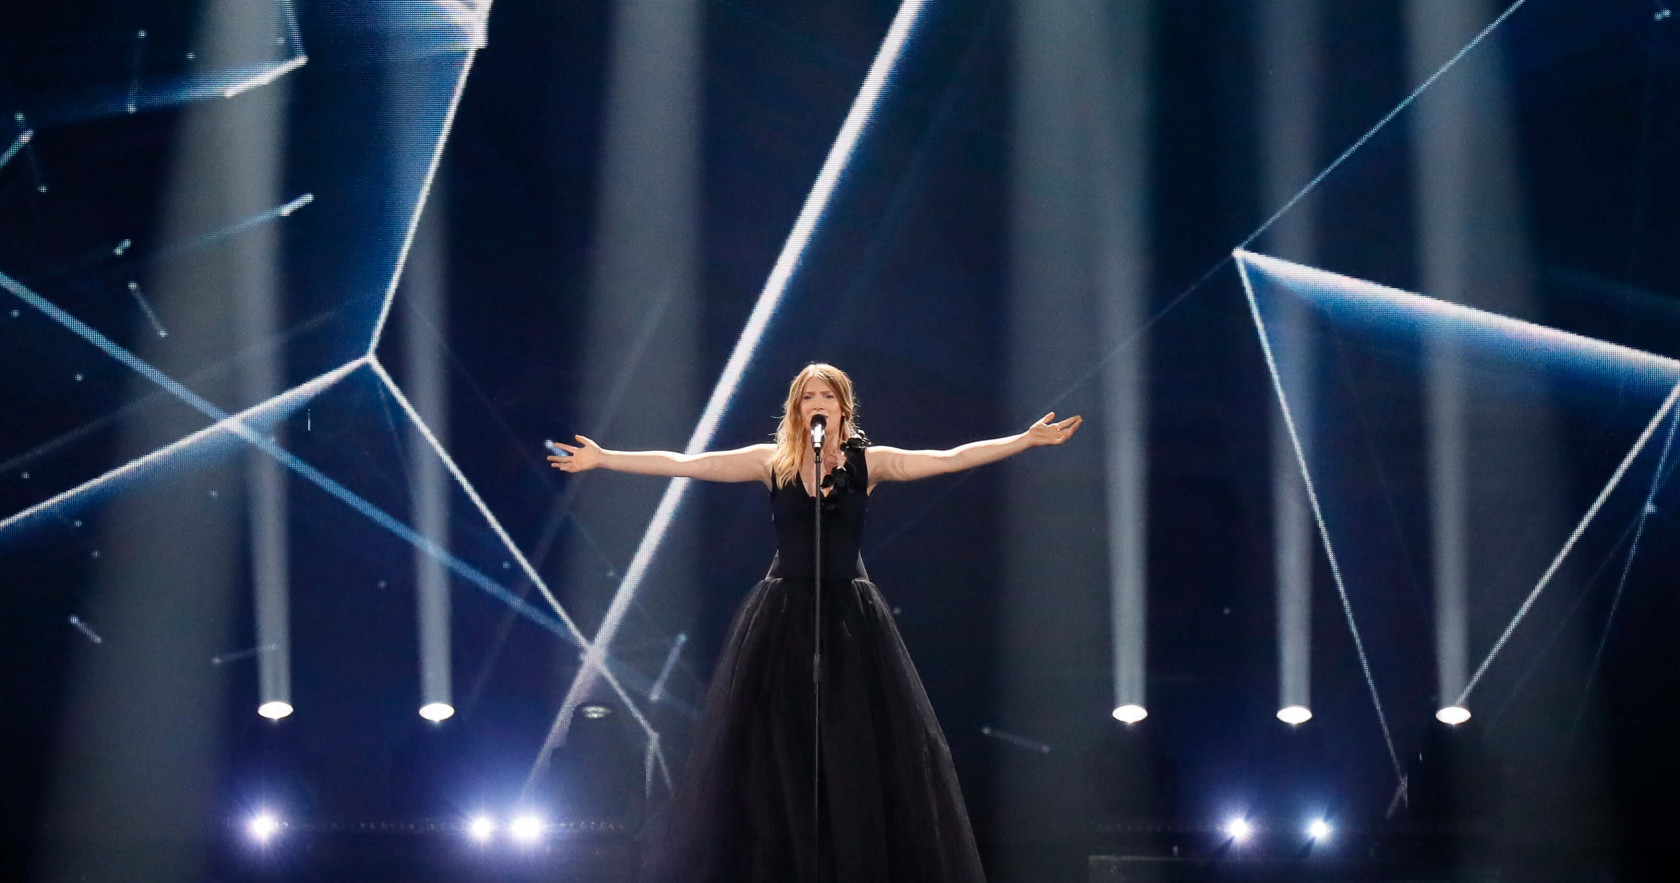 Blanche performed 'City Lights' for Belgium in 2017